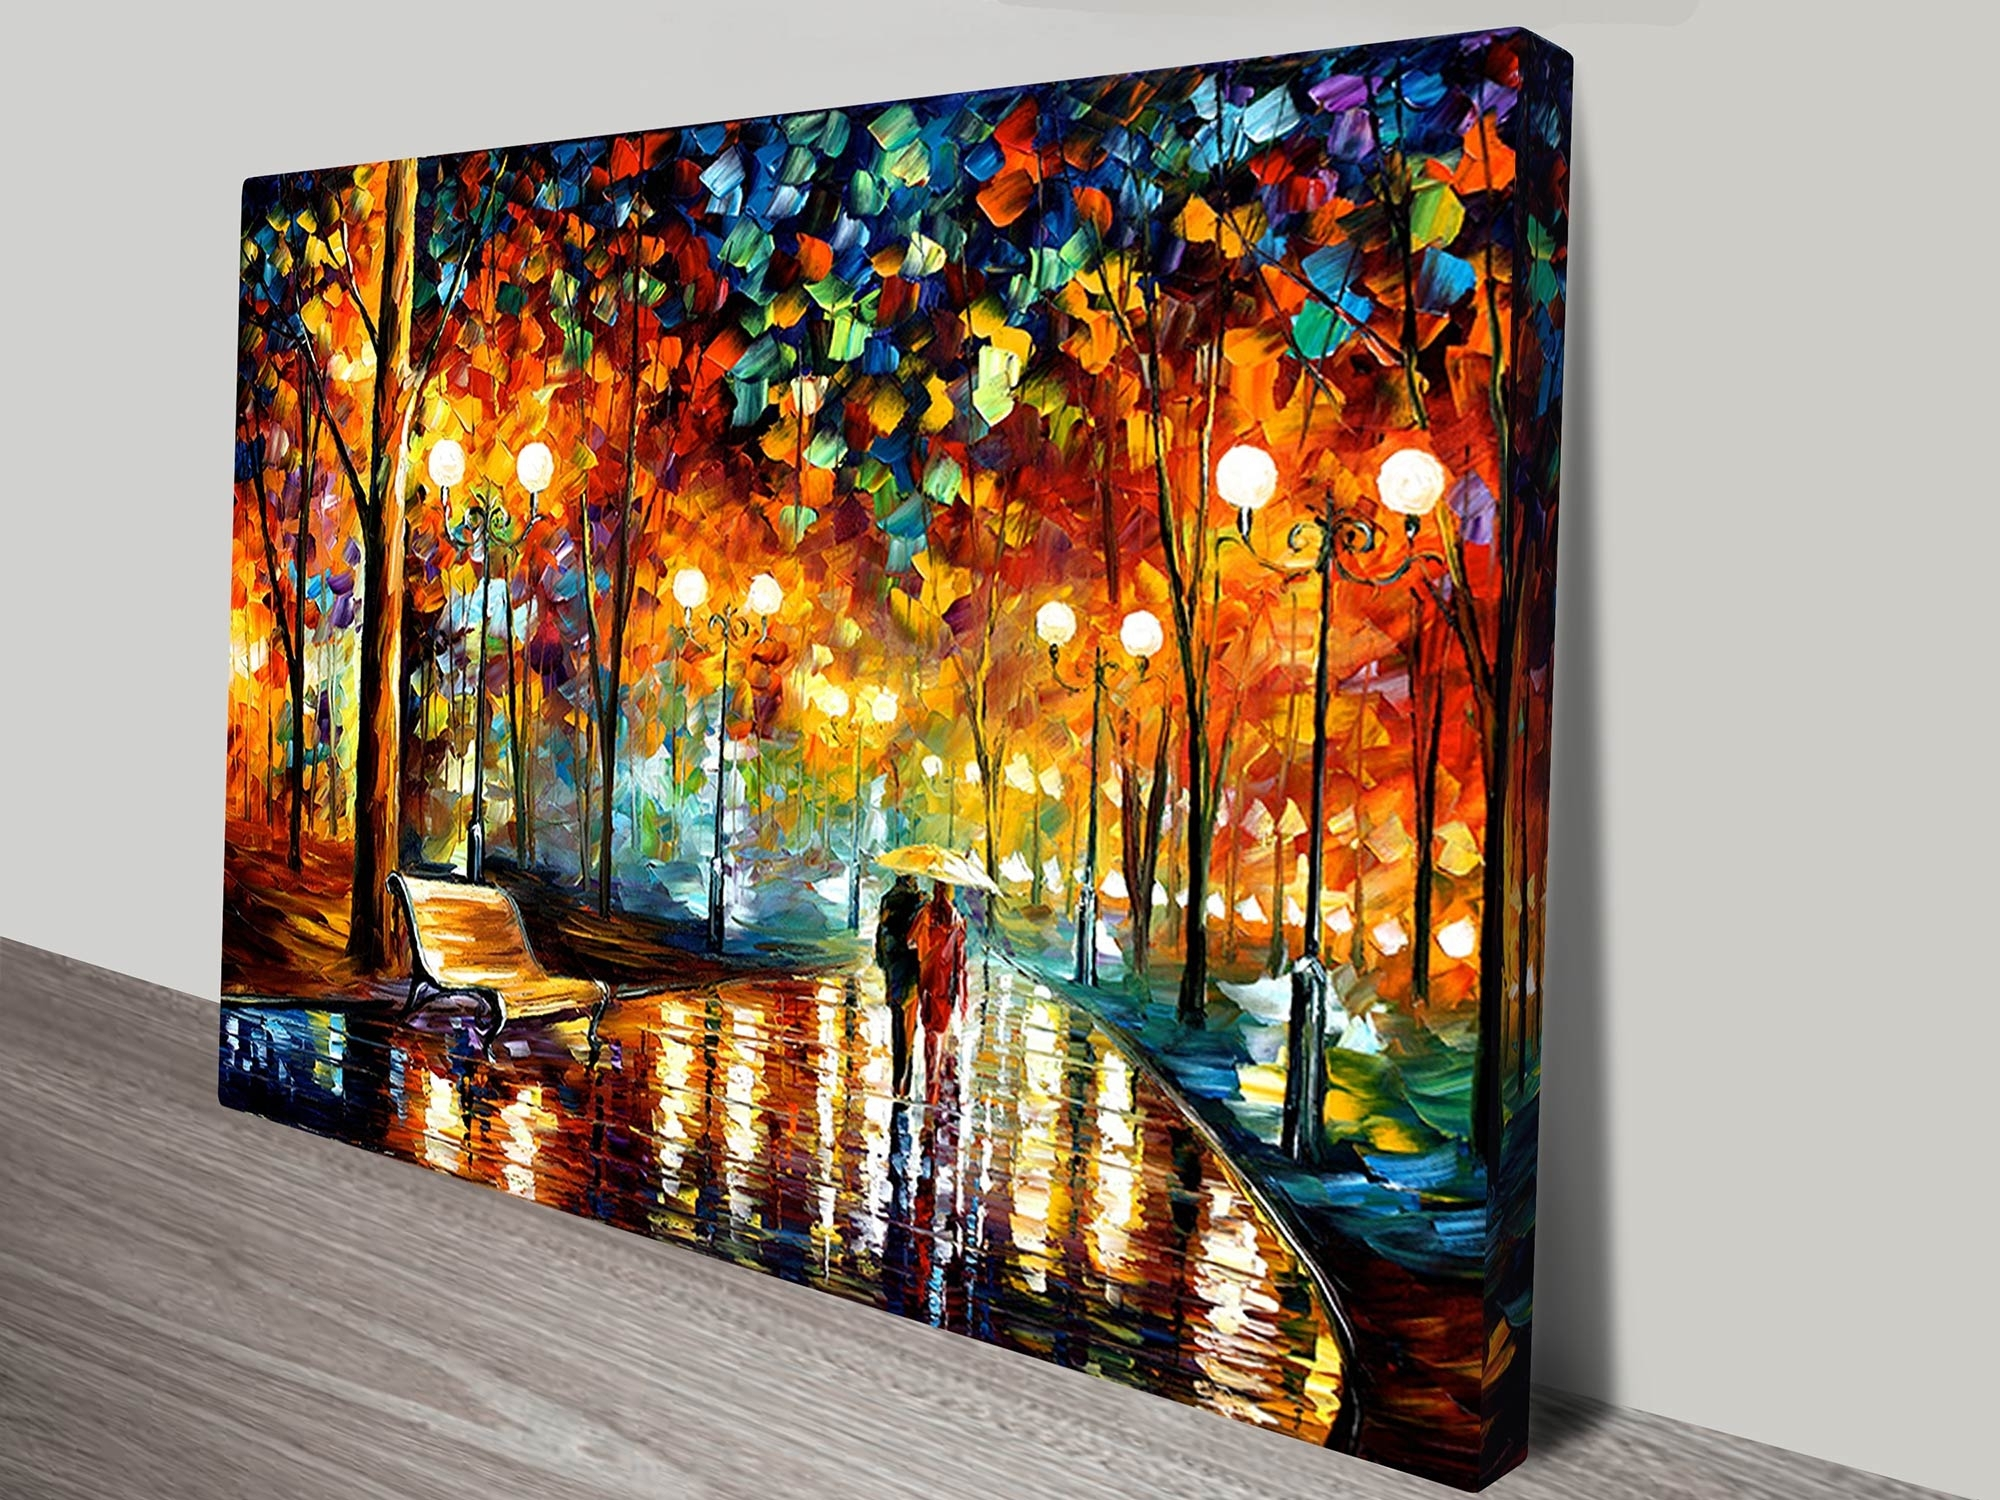 Home Decor: Lovely Canvas Artwork With Rustle Leonid Afremov Art In Most Popular Canvas Wall Art Of Perth (Gallery 6 of 15)